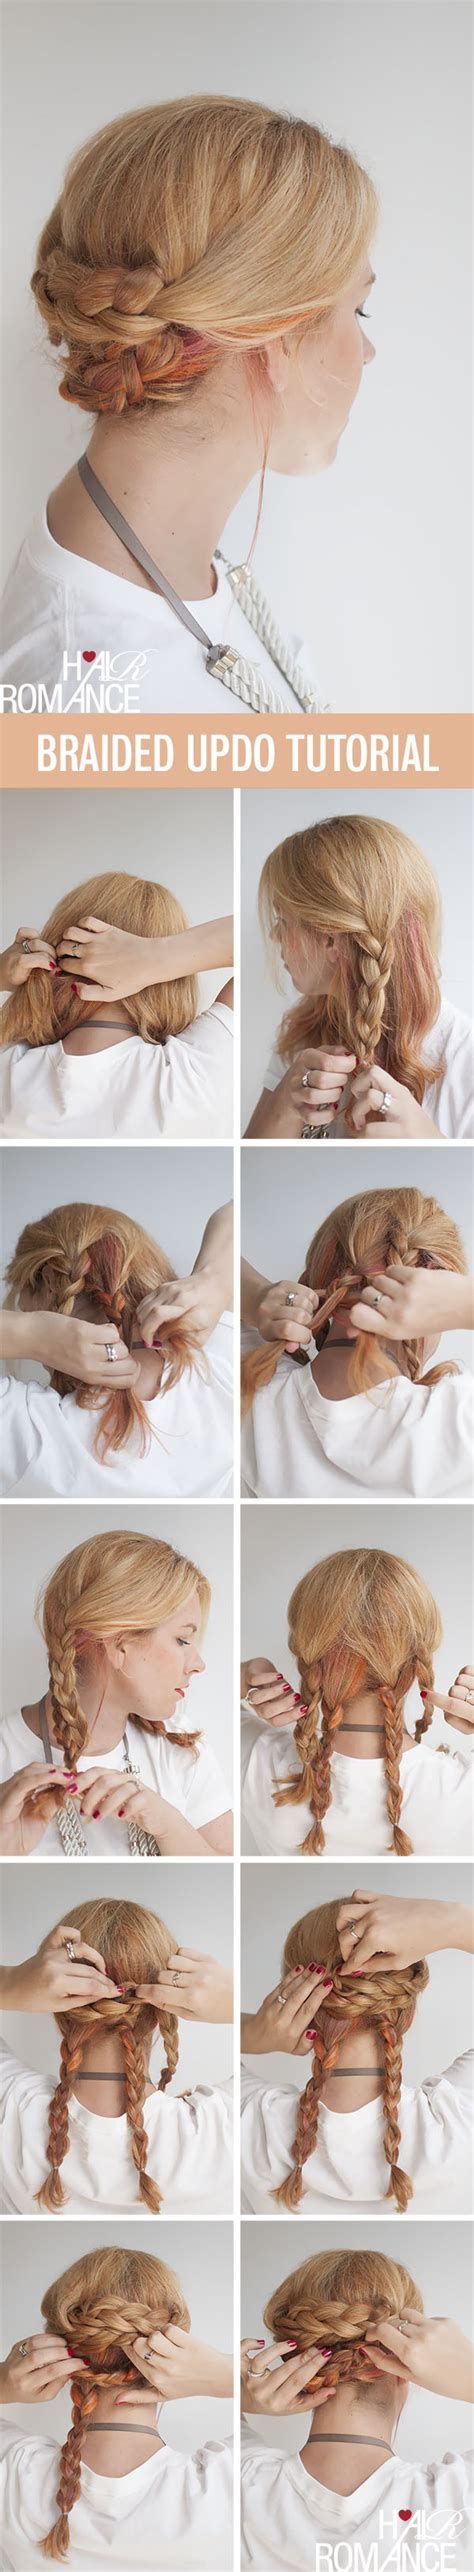 easy hairstyle tutorials for hair braided updo hair tutorial hair